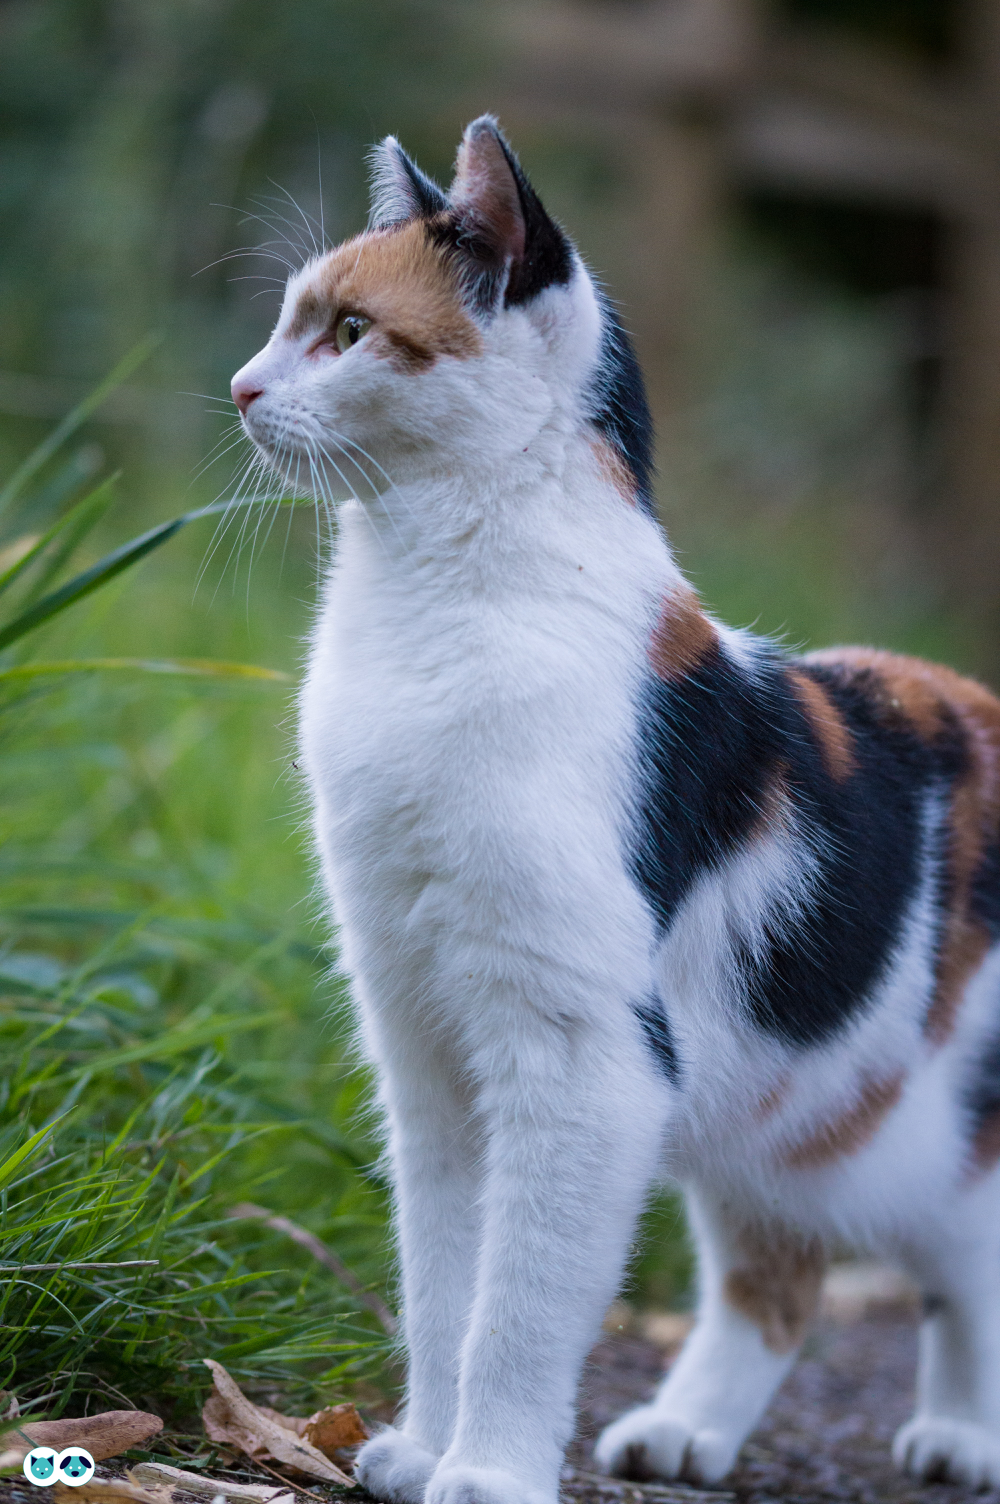 Does a natural dewormer for cats work? Cat breeds